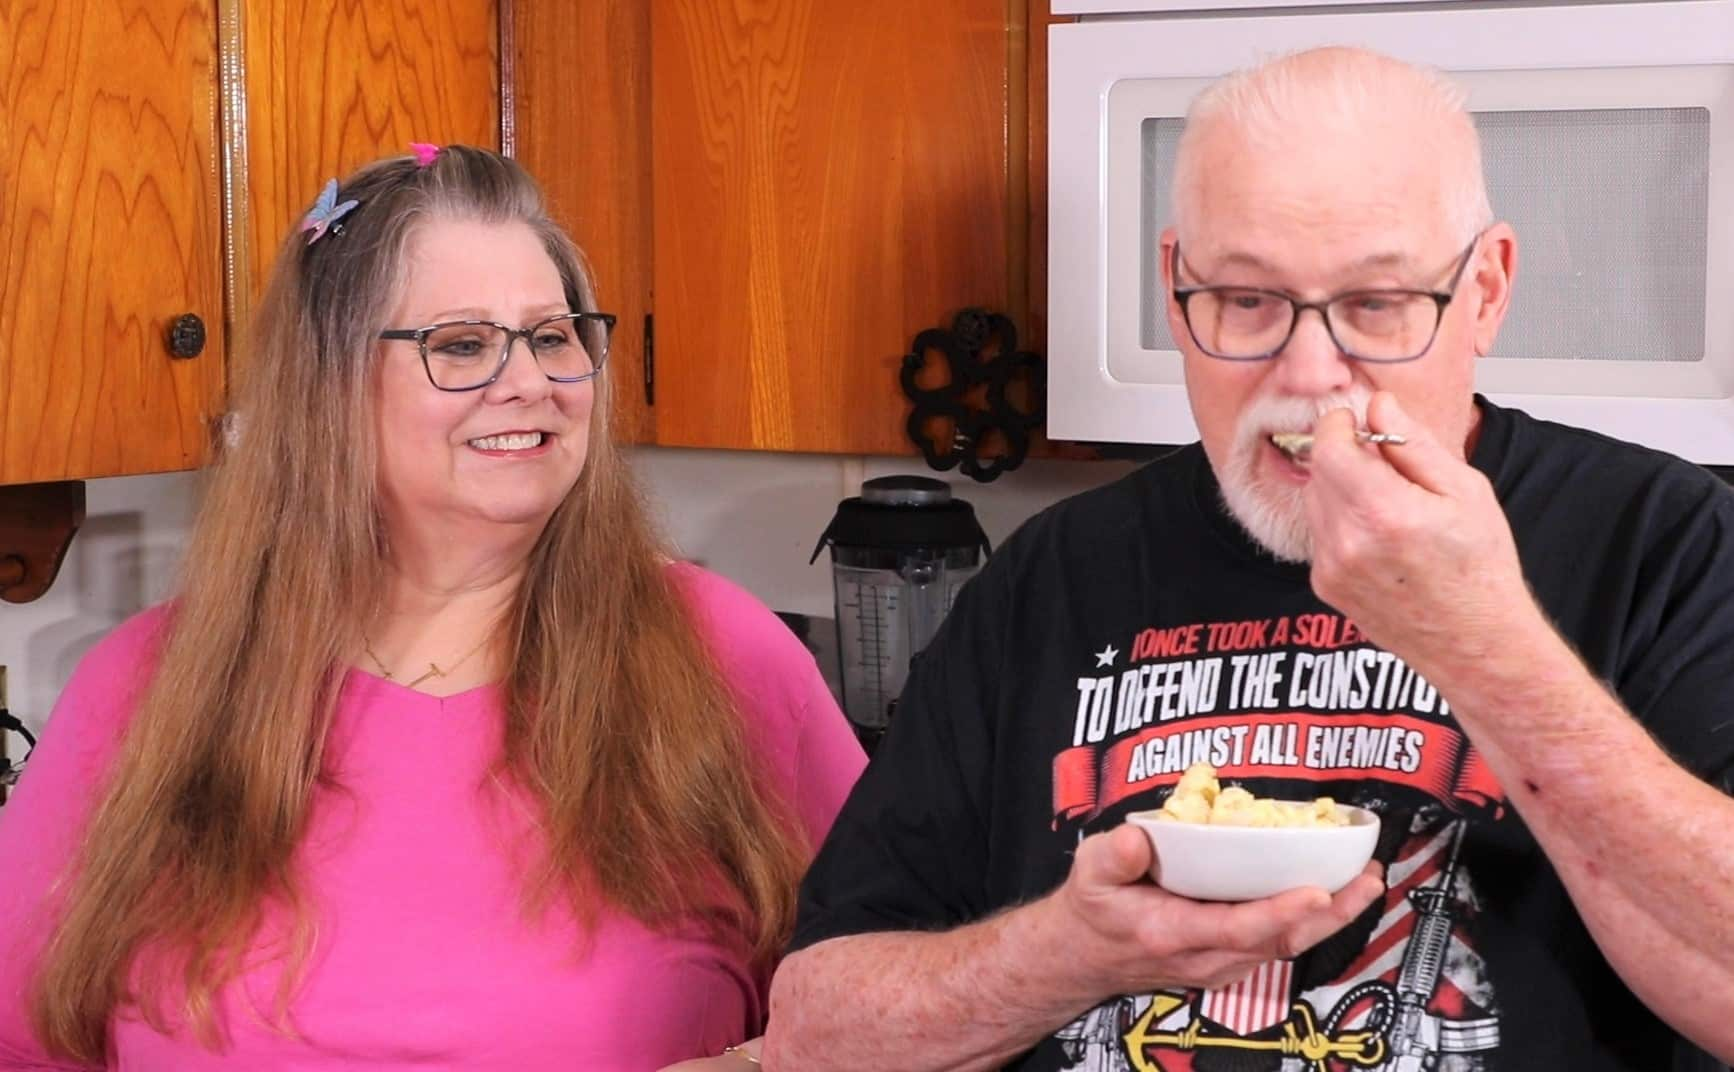 Jill wearing a pink shirt and Ed wearing a black shirt. Ed is holding a small bowl of cauliflower salad and using a fork to taste.